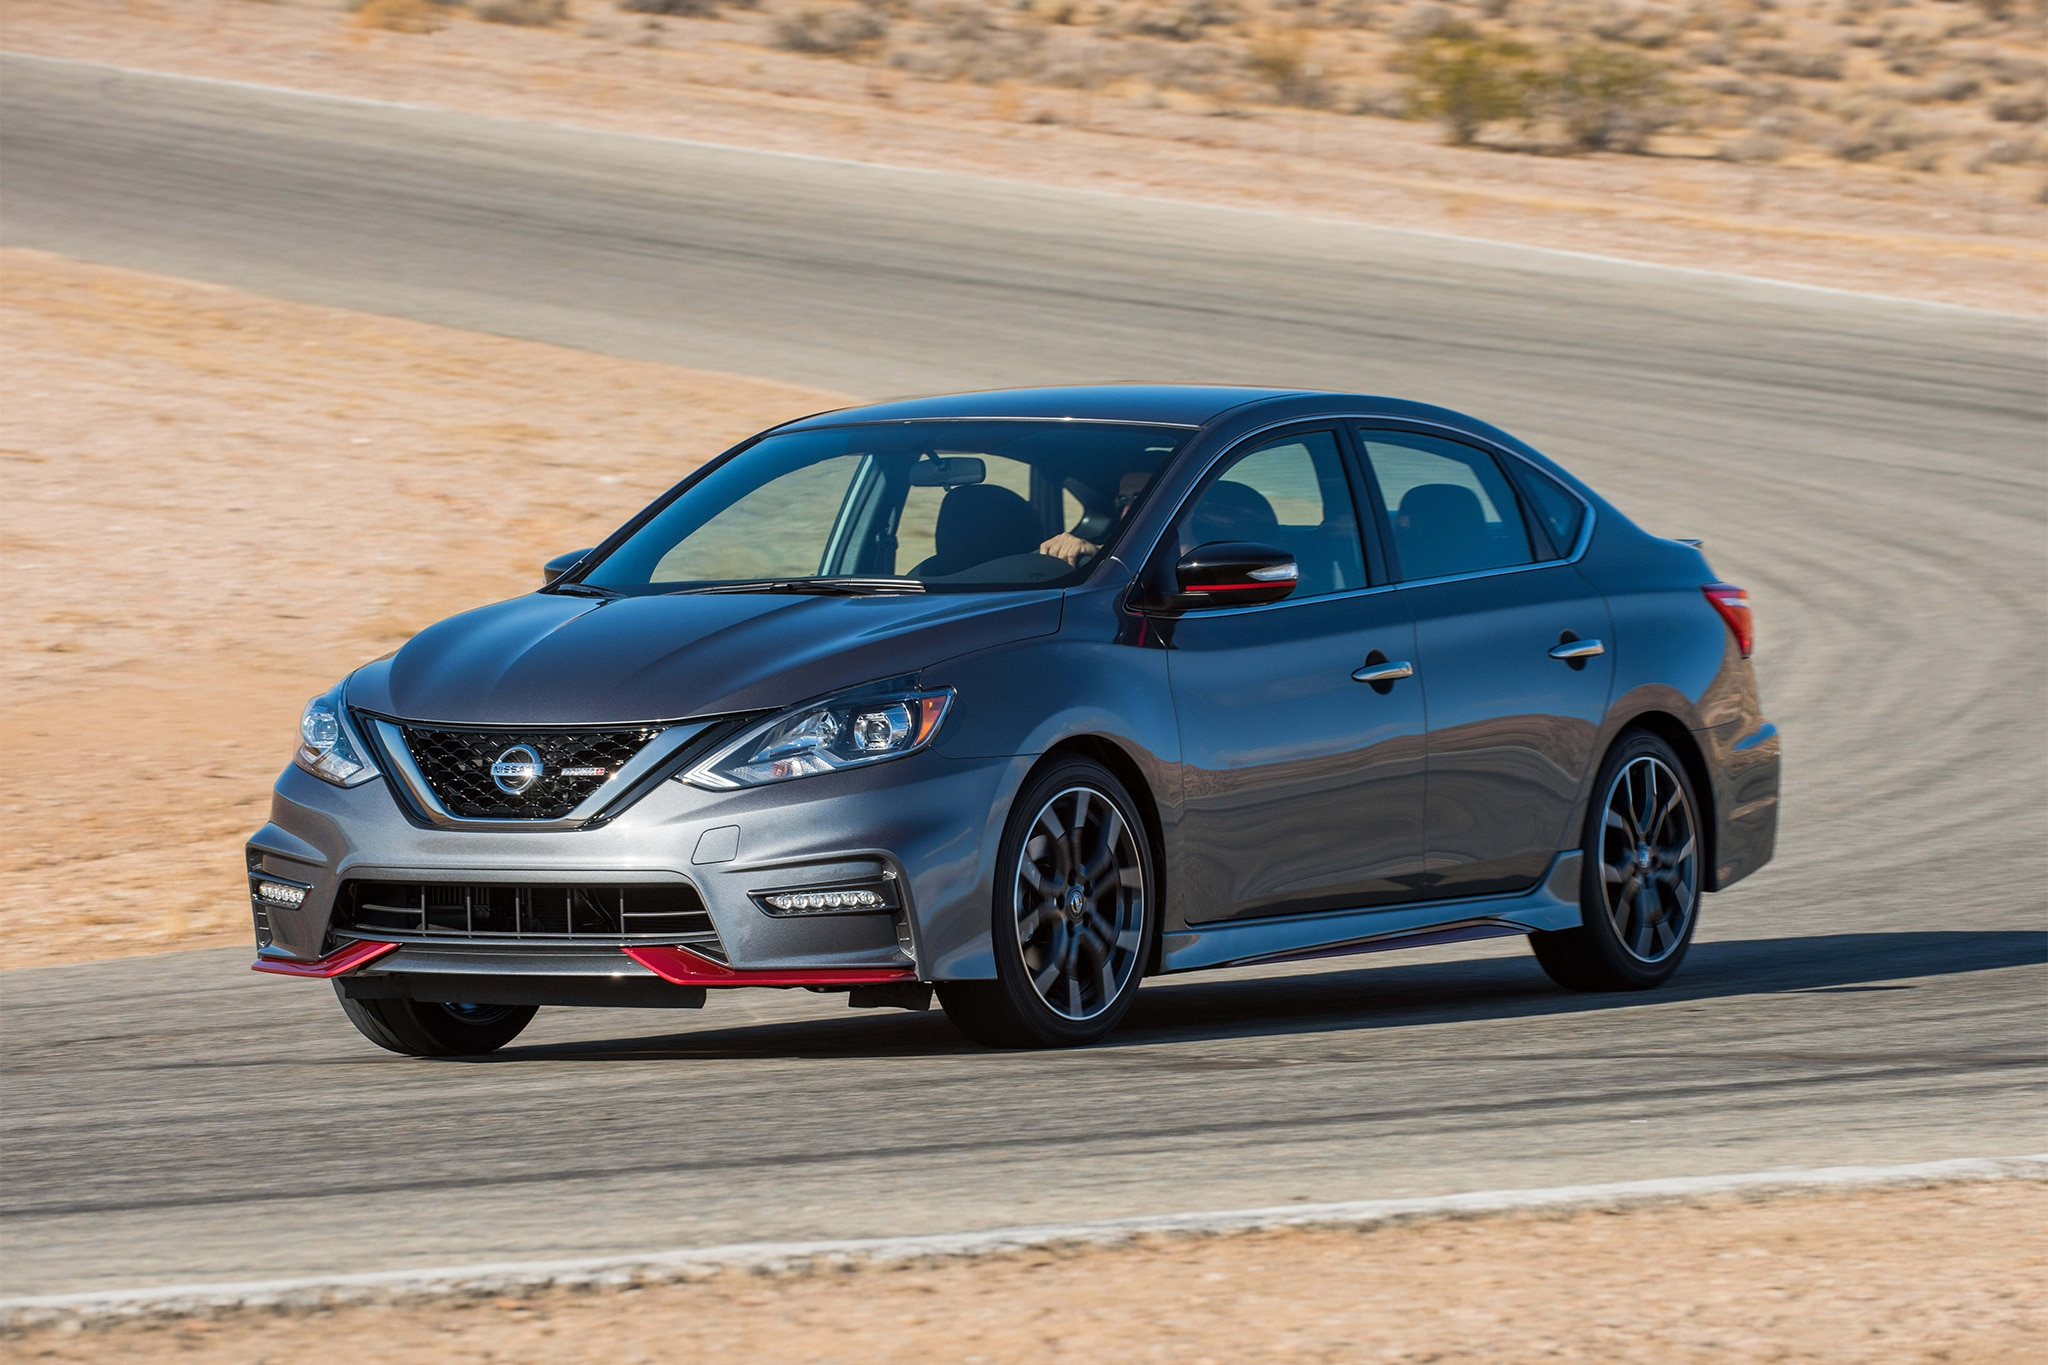 2017 Nissan Sentra NISMO Front Three Quarter In Motion 07